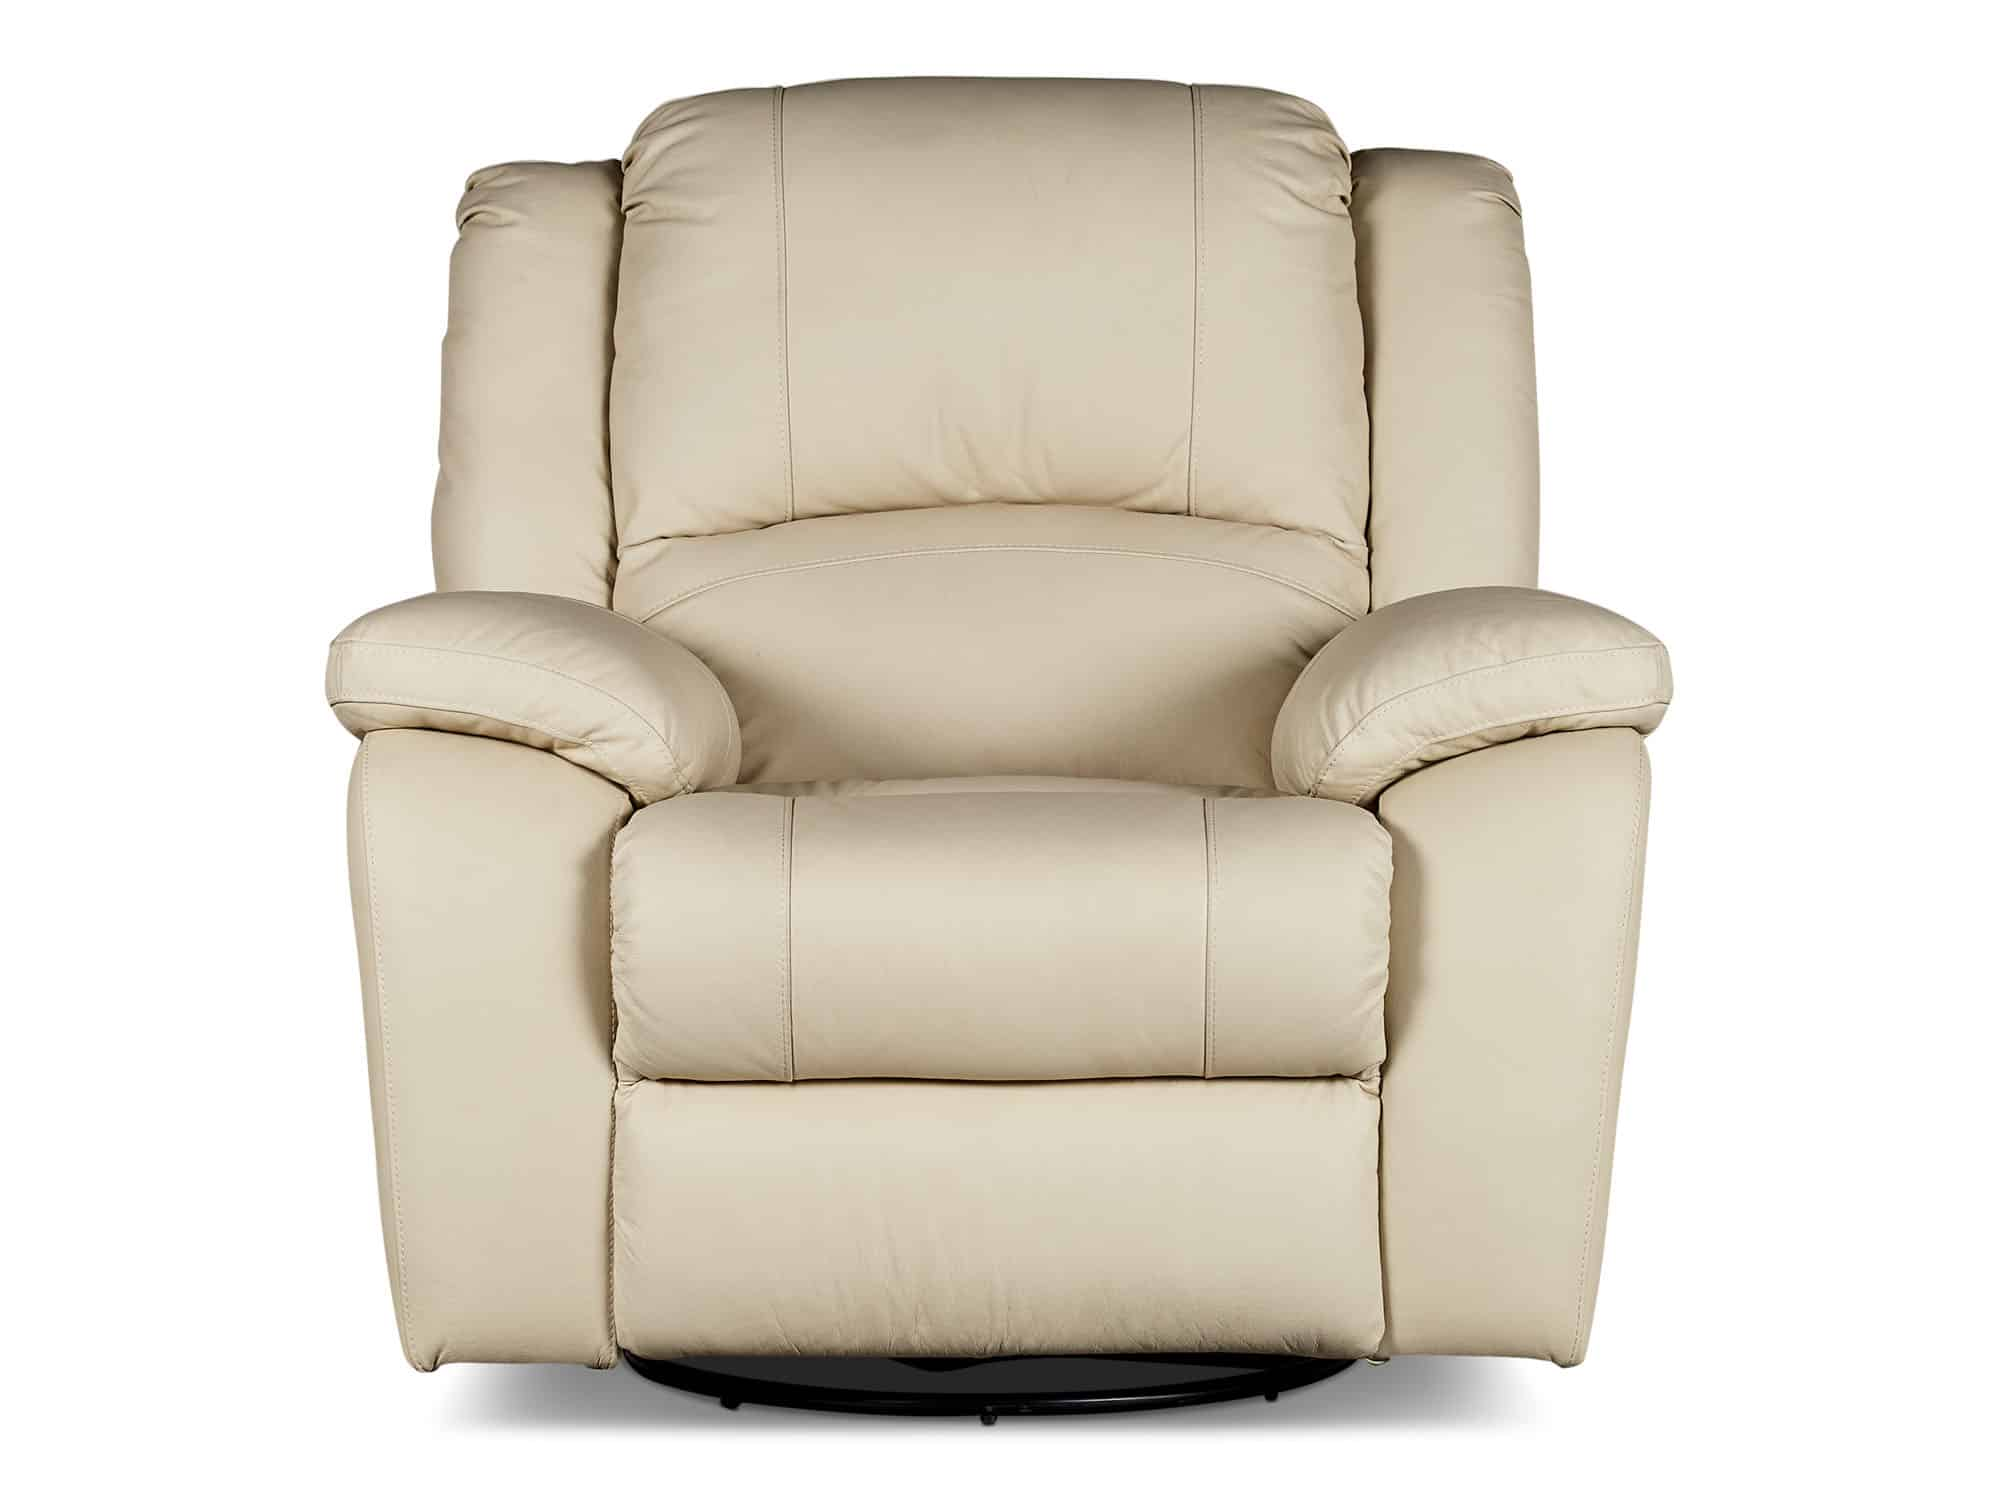 Rolling_lounge_suite_recliner_sofa_leather_ivory_group. Rolling Recliner Lounge Suite  sc 1 st  Big Save Furniture : reclining lounge suites - islam-shia.org